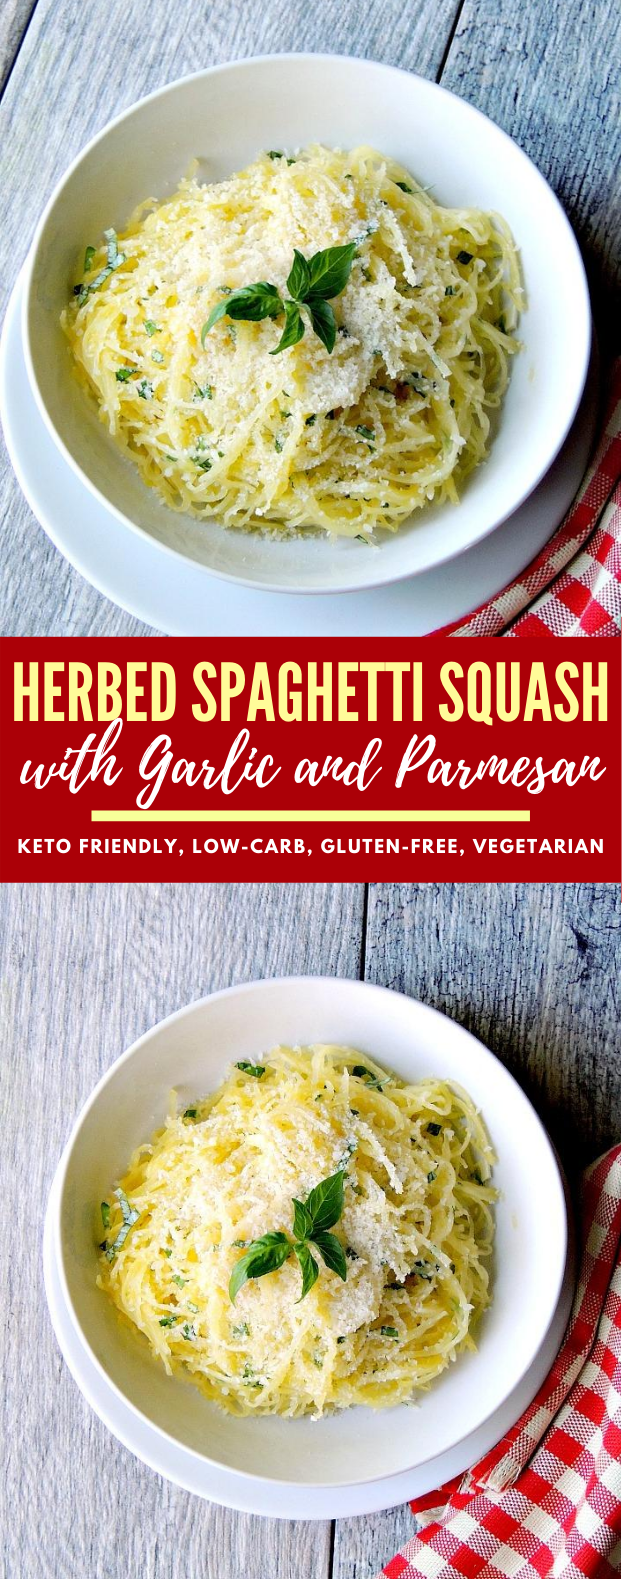 Herbed Spaghetti Squash with Garlic and Parmesan #healthy #vegetarian  #diet #lowcarb #ketogenic